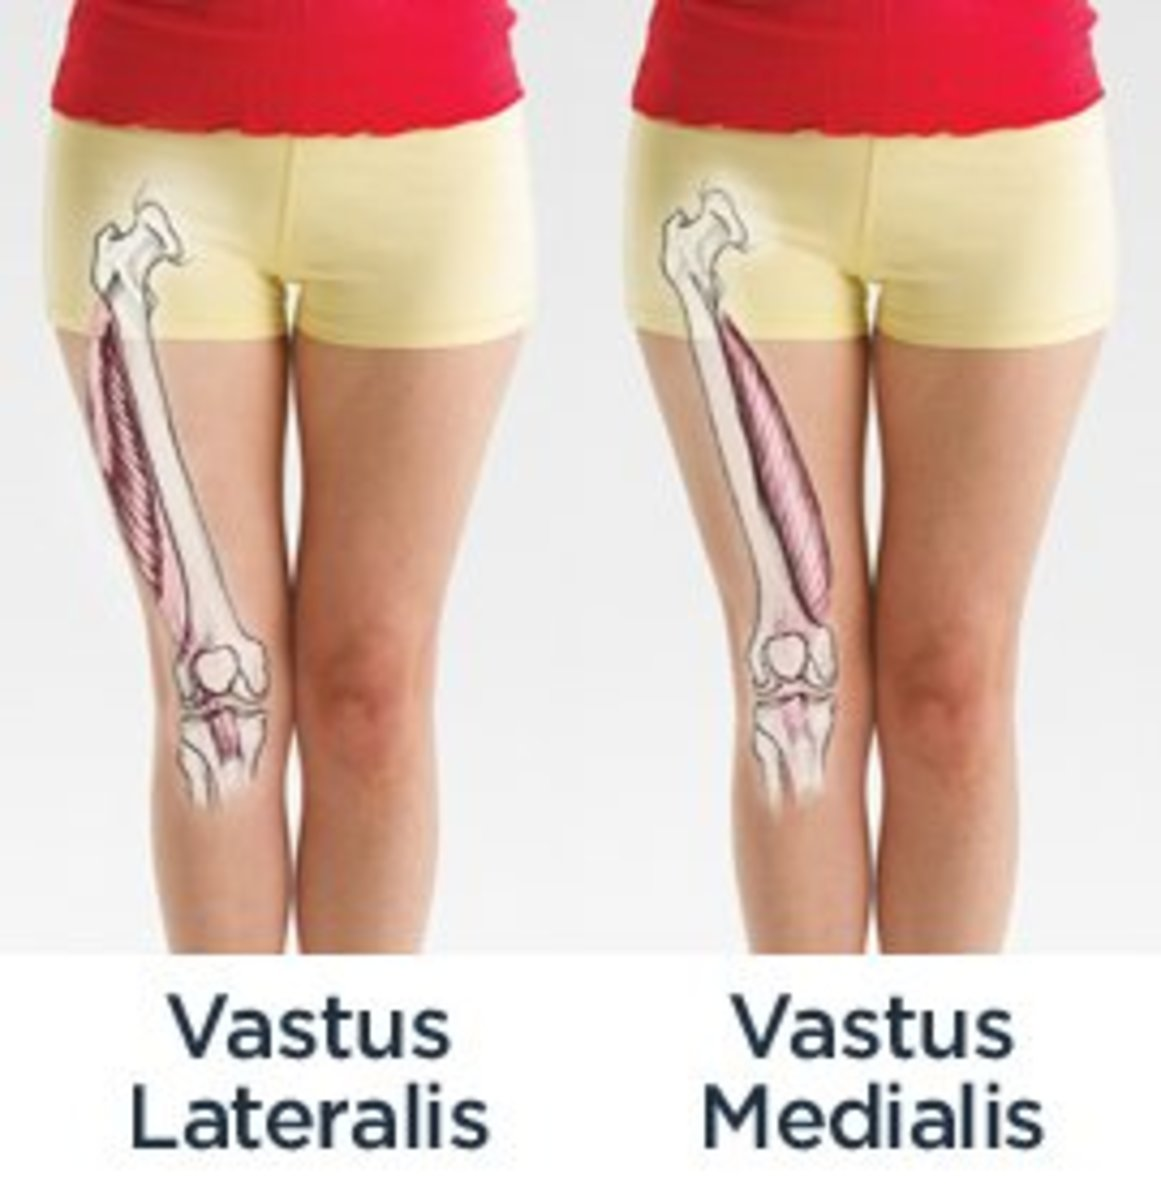 VMO Exercises - Target Toning the Teardrop Muscle by the Knee